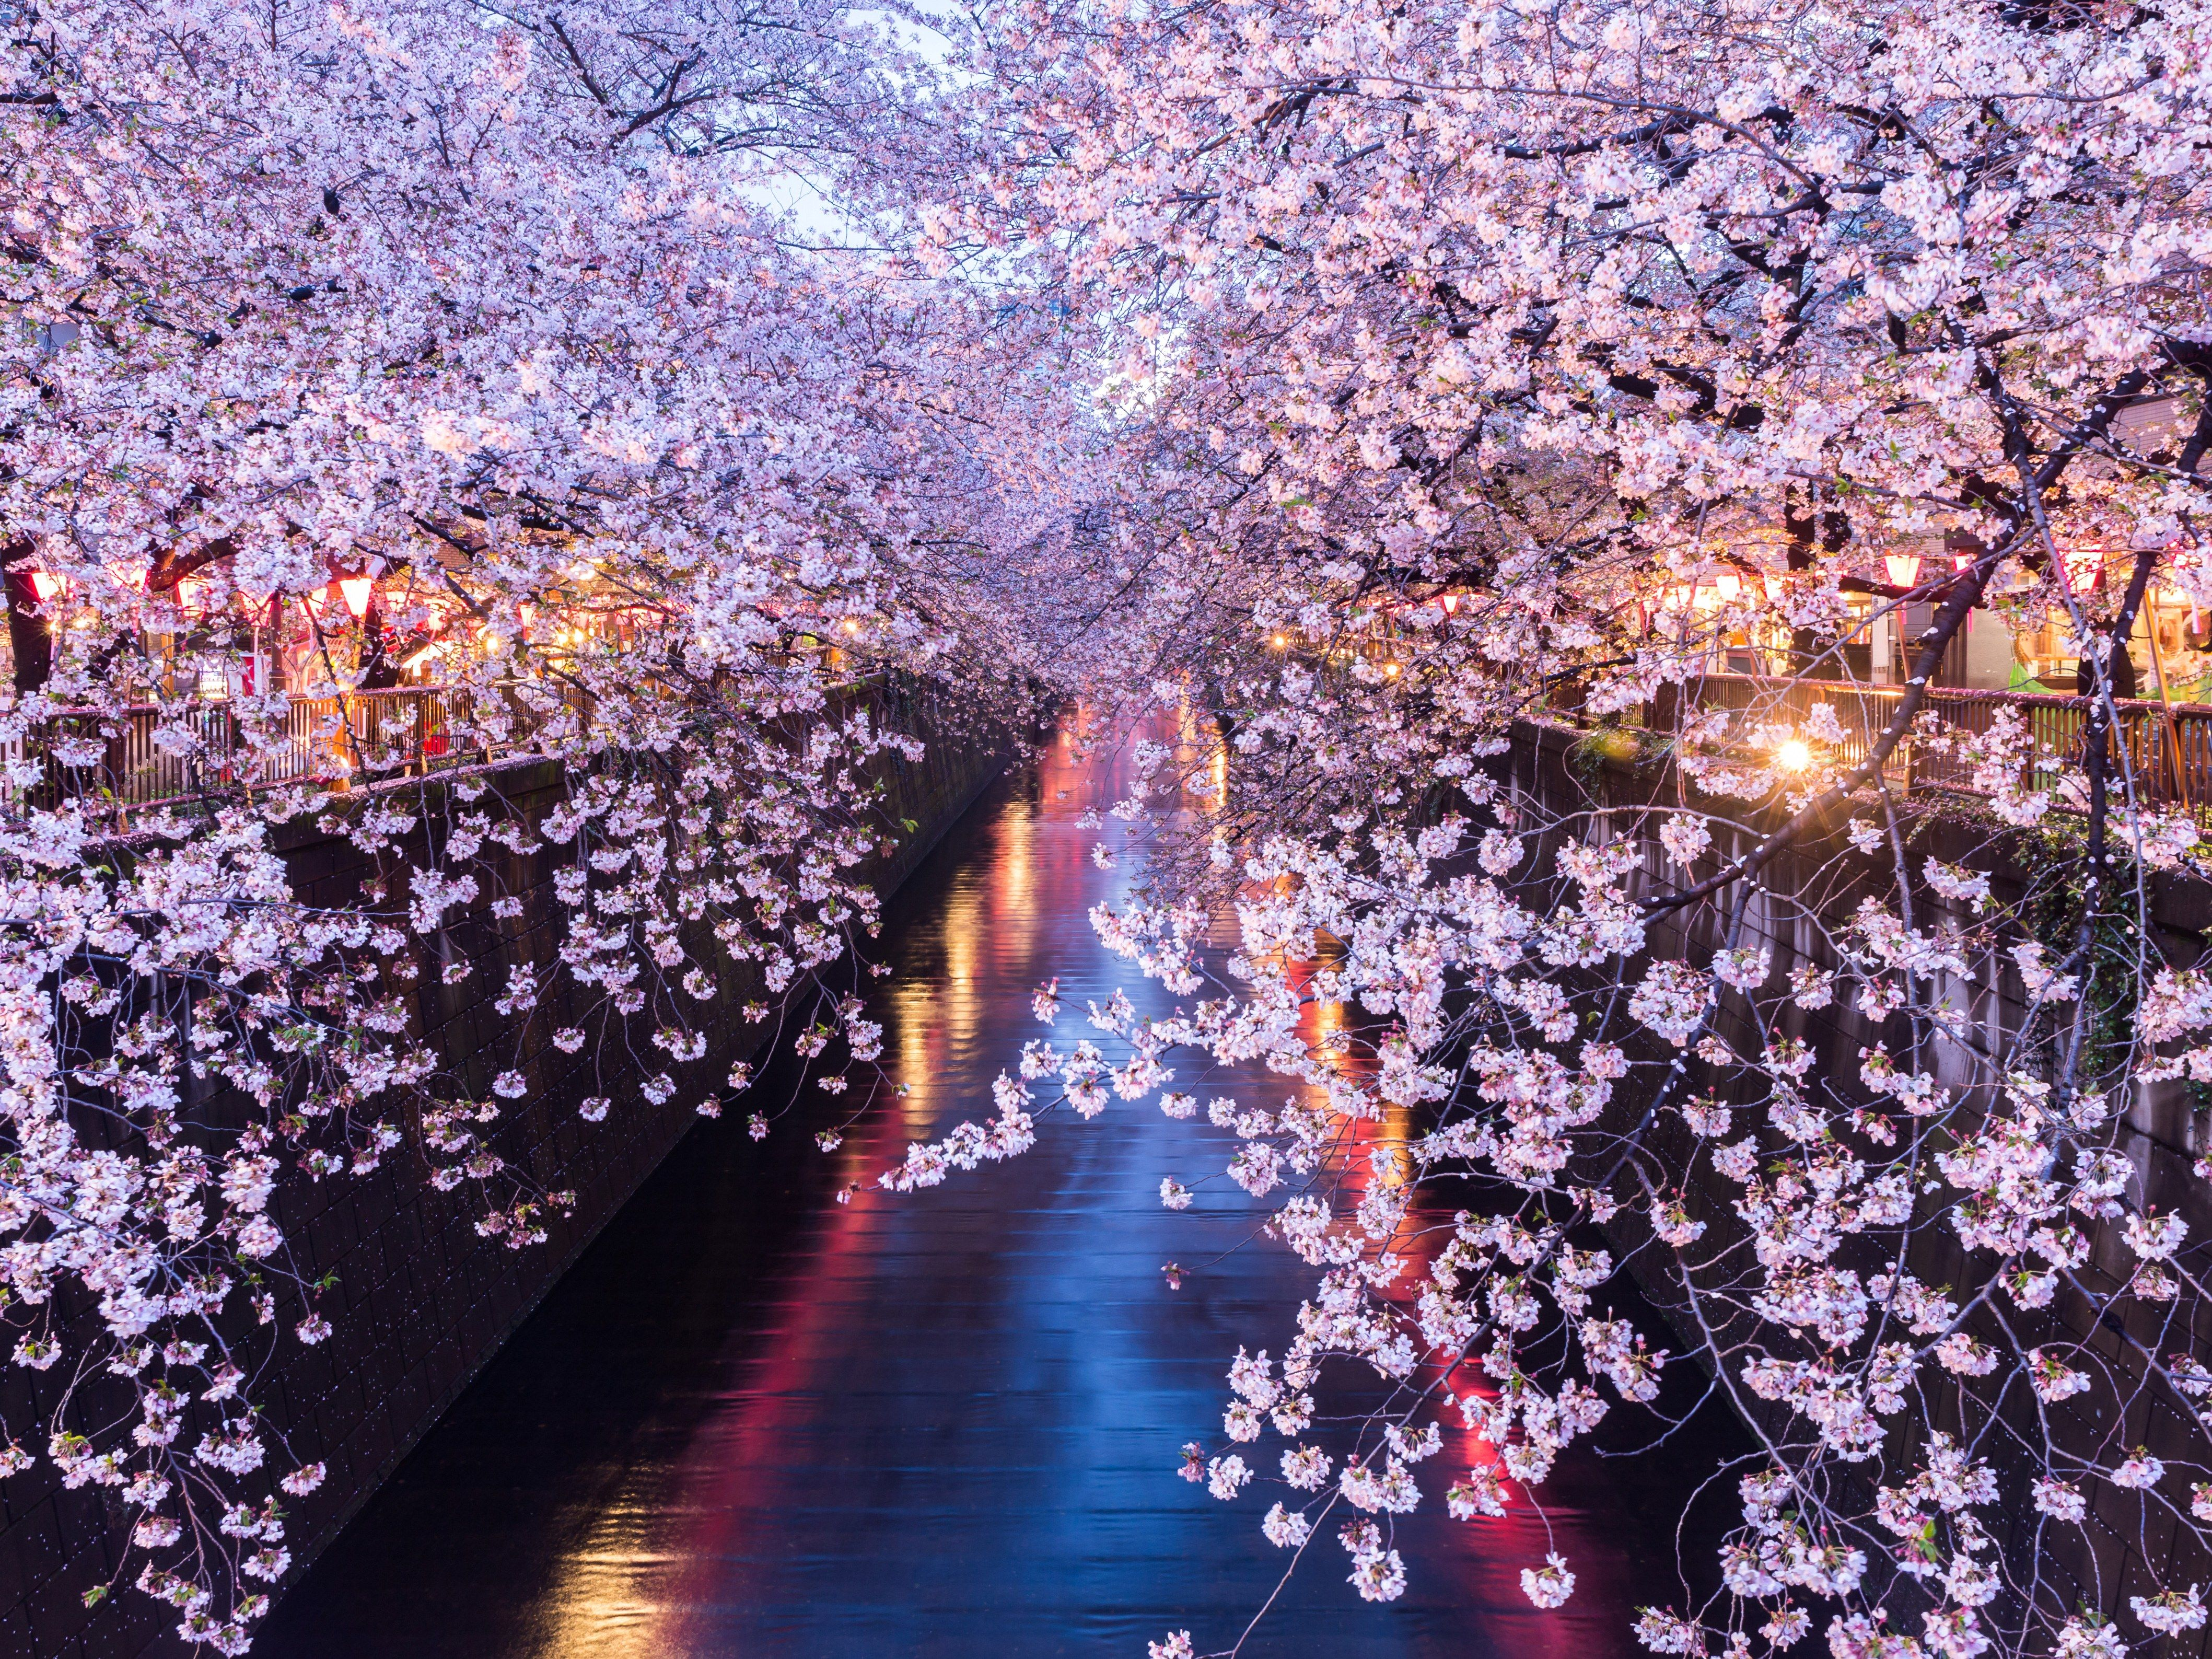 Fly To Tokyo For 499 During Cherry Blossom Season Cherry Blossom Cherry Blossom Season Cherry Blossom Flowers